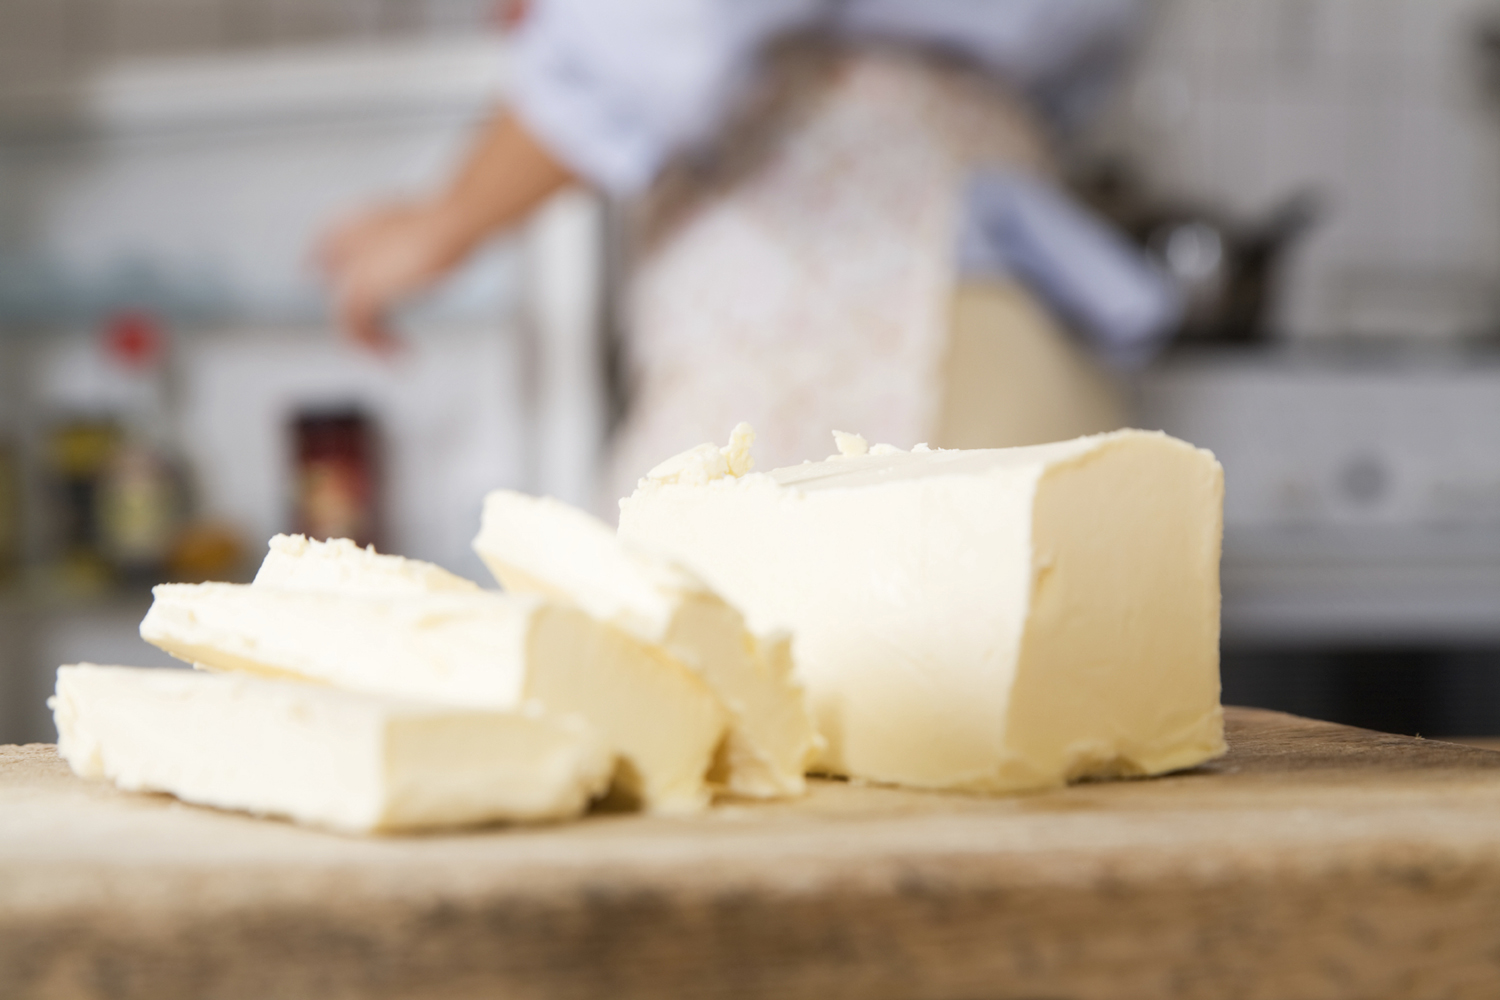 Replacing Butter